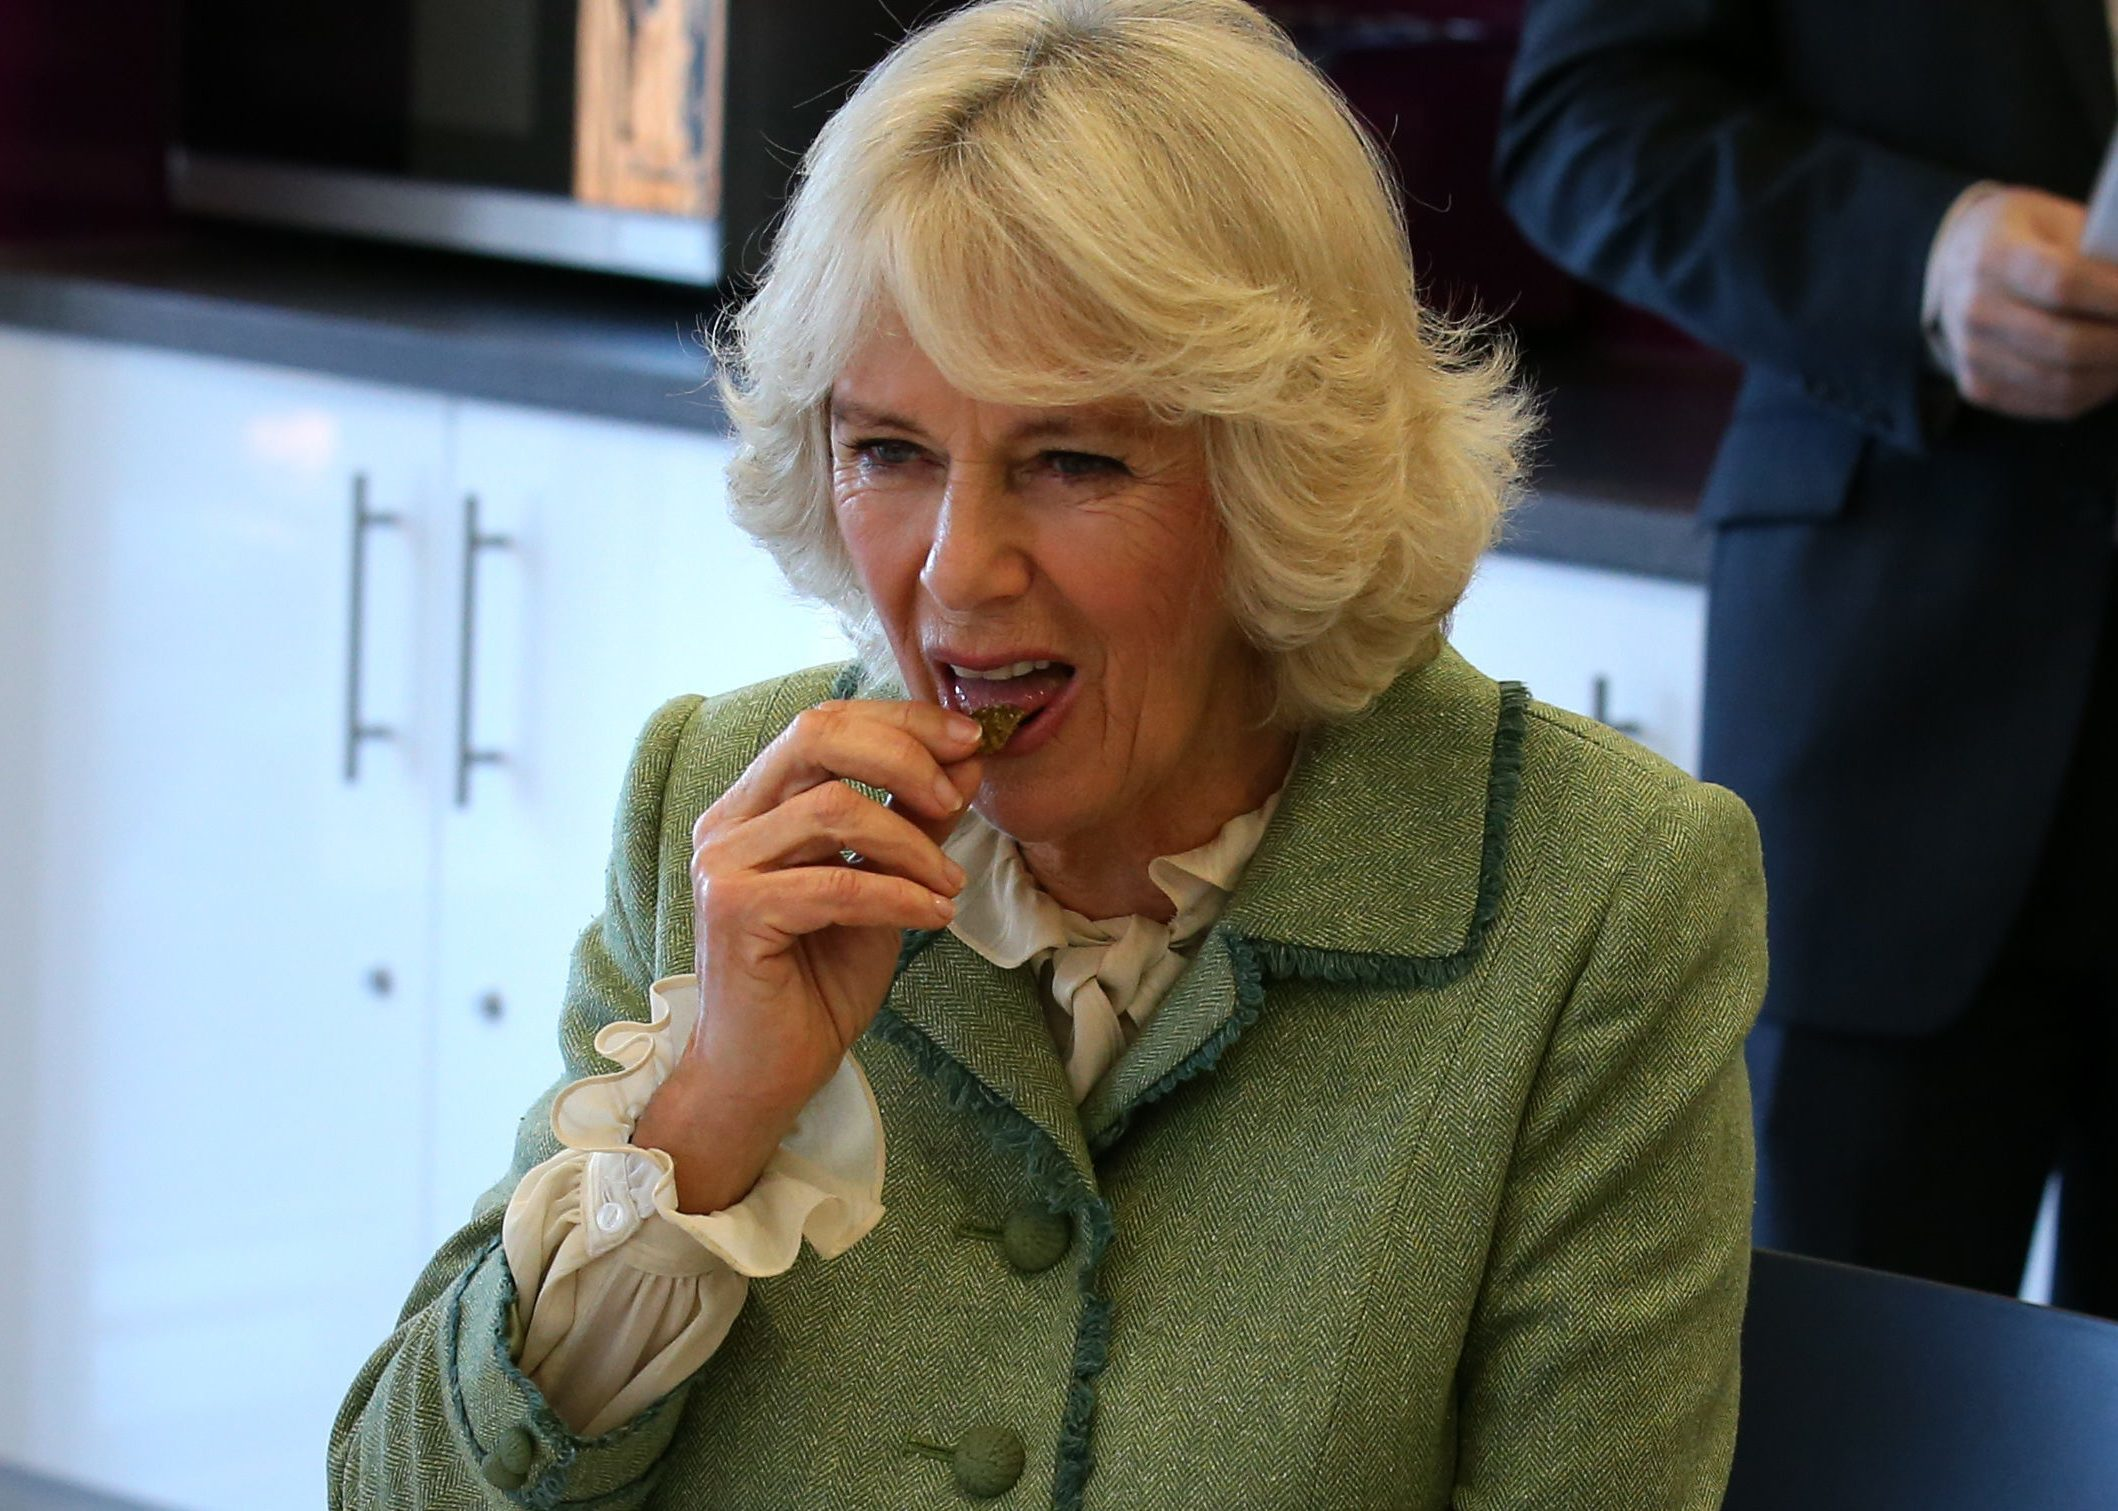 The Duchess of Cornwall, known as the Duchess of Rothesay while in Scotland, eats broccoli crisp bread in the Nutrition Kitchen during a visit to the new Rowett Institute of Nutrition and Healthy (Andrew Milligan/PA Wire)